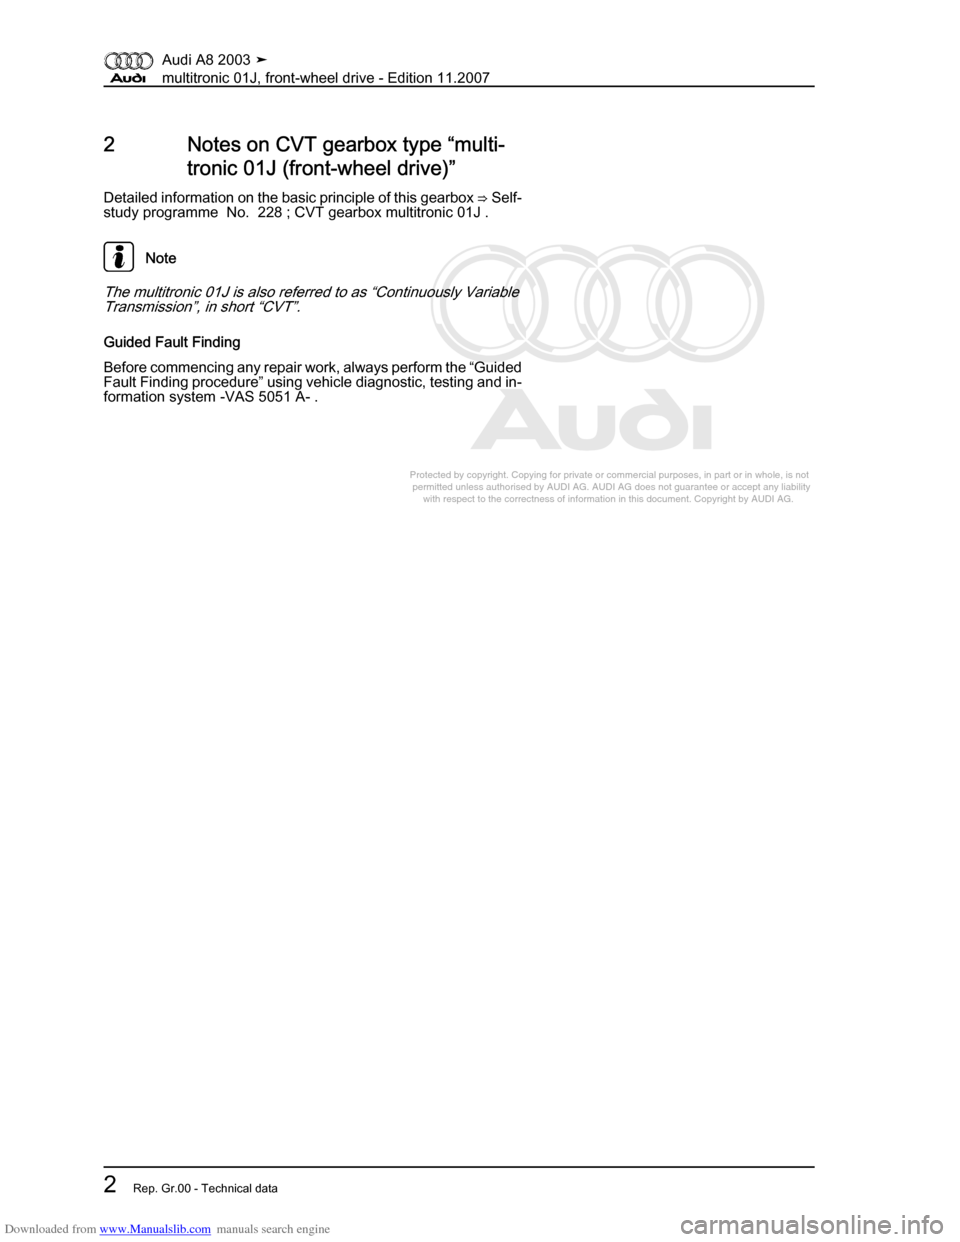 AUDI A8 2003 D3 / 2.G Multitronic System Workshop Manual, Page 6